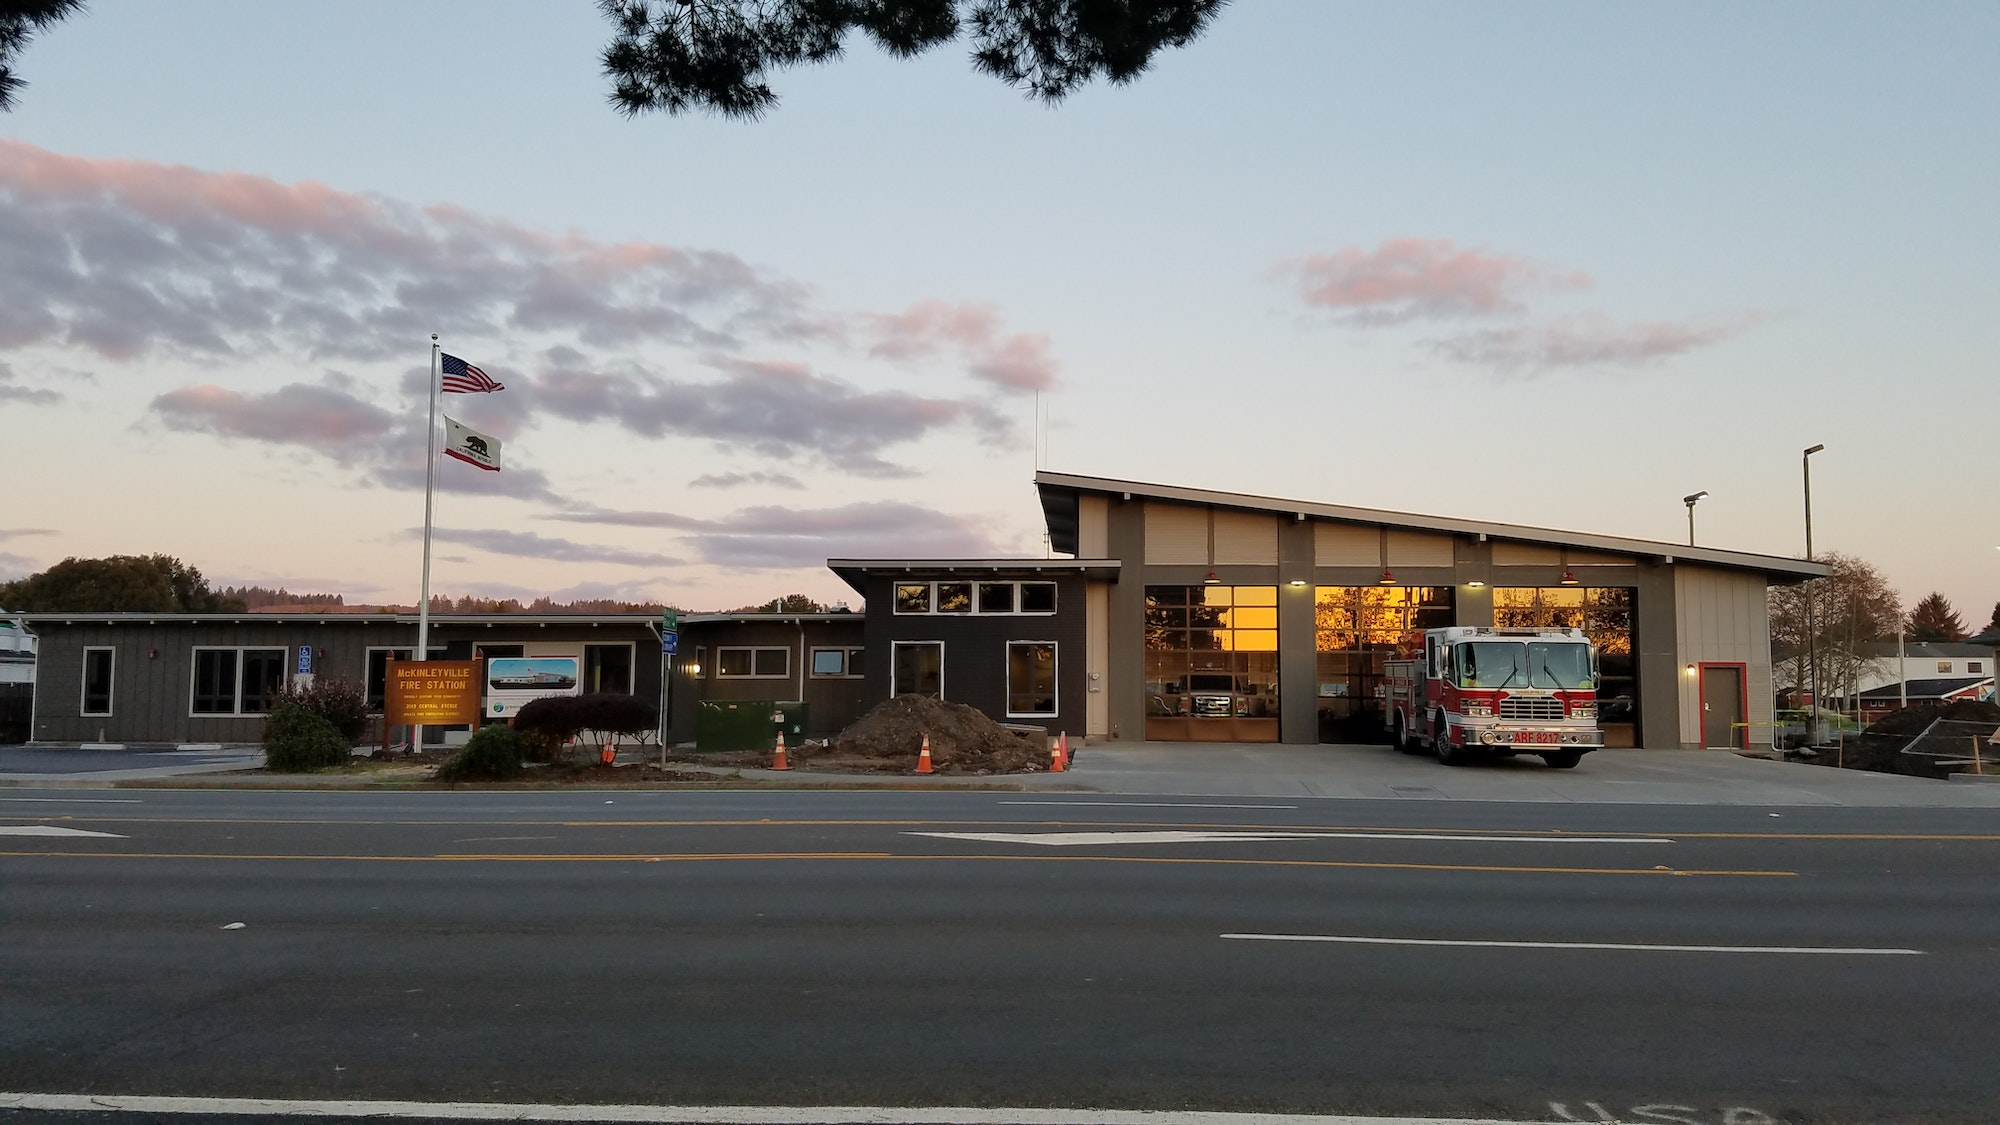 Photo of McKinleyville Station with an engine in the driveway.